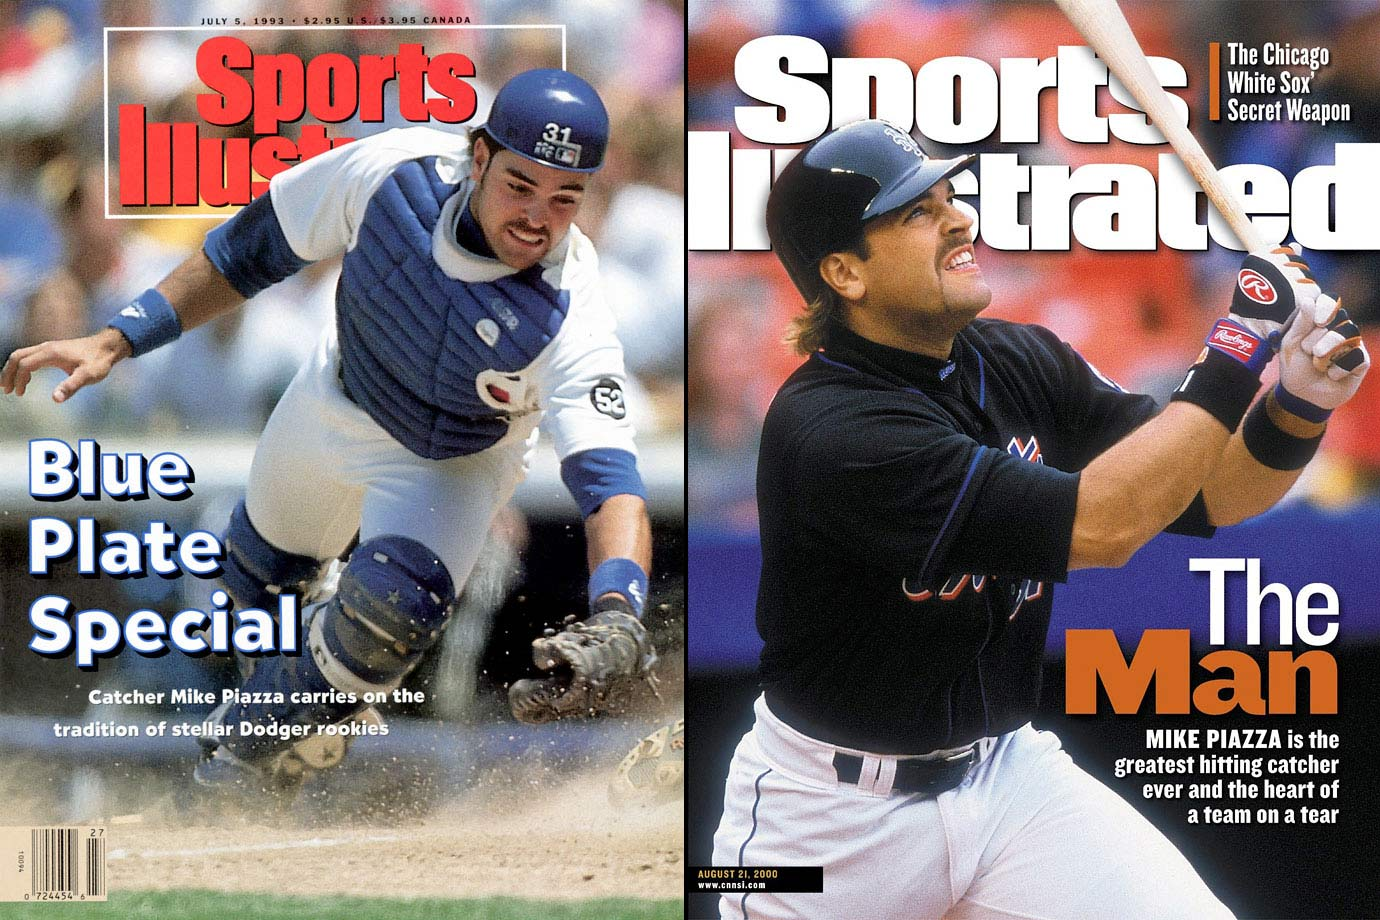 Of the 1,433 people selected in the 1988 Draft, catcher Mike Piazza was No. 1390. Piazza, who was drafted by the Dodgers largely because then-manager Tommy Lasorda was friends with the Piazza family, went on to hit more home runs than any catcher in baseball history.